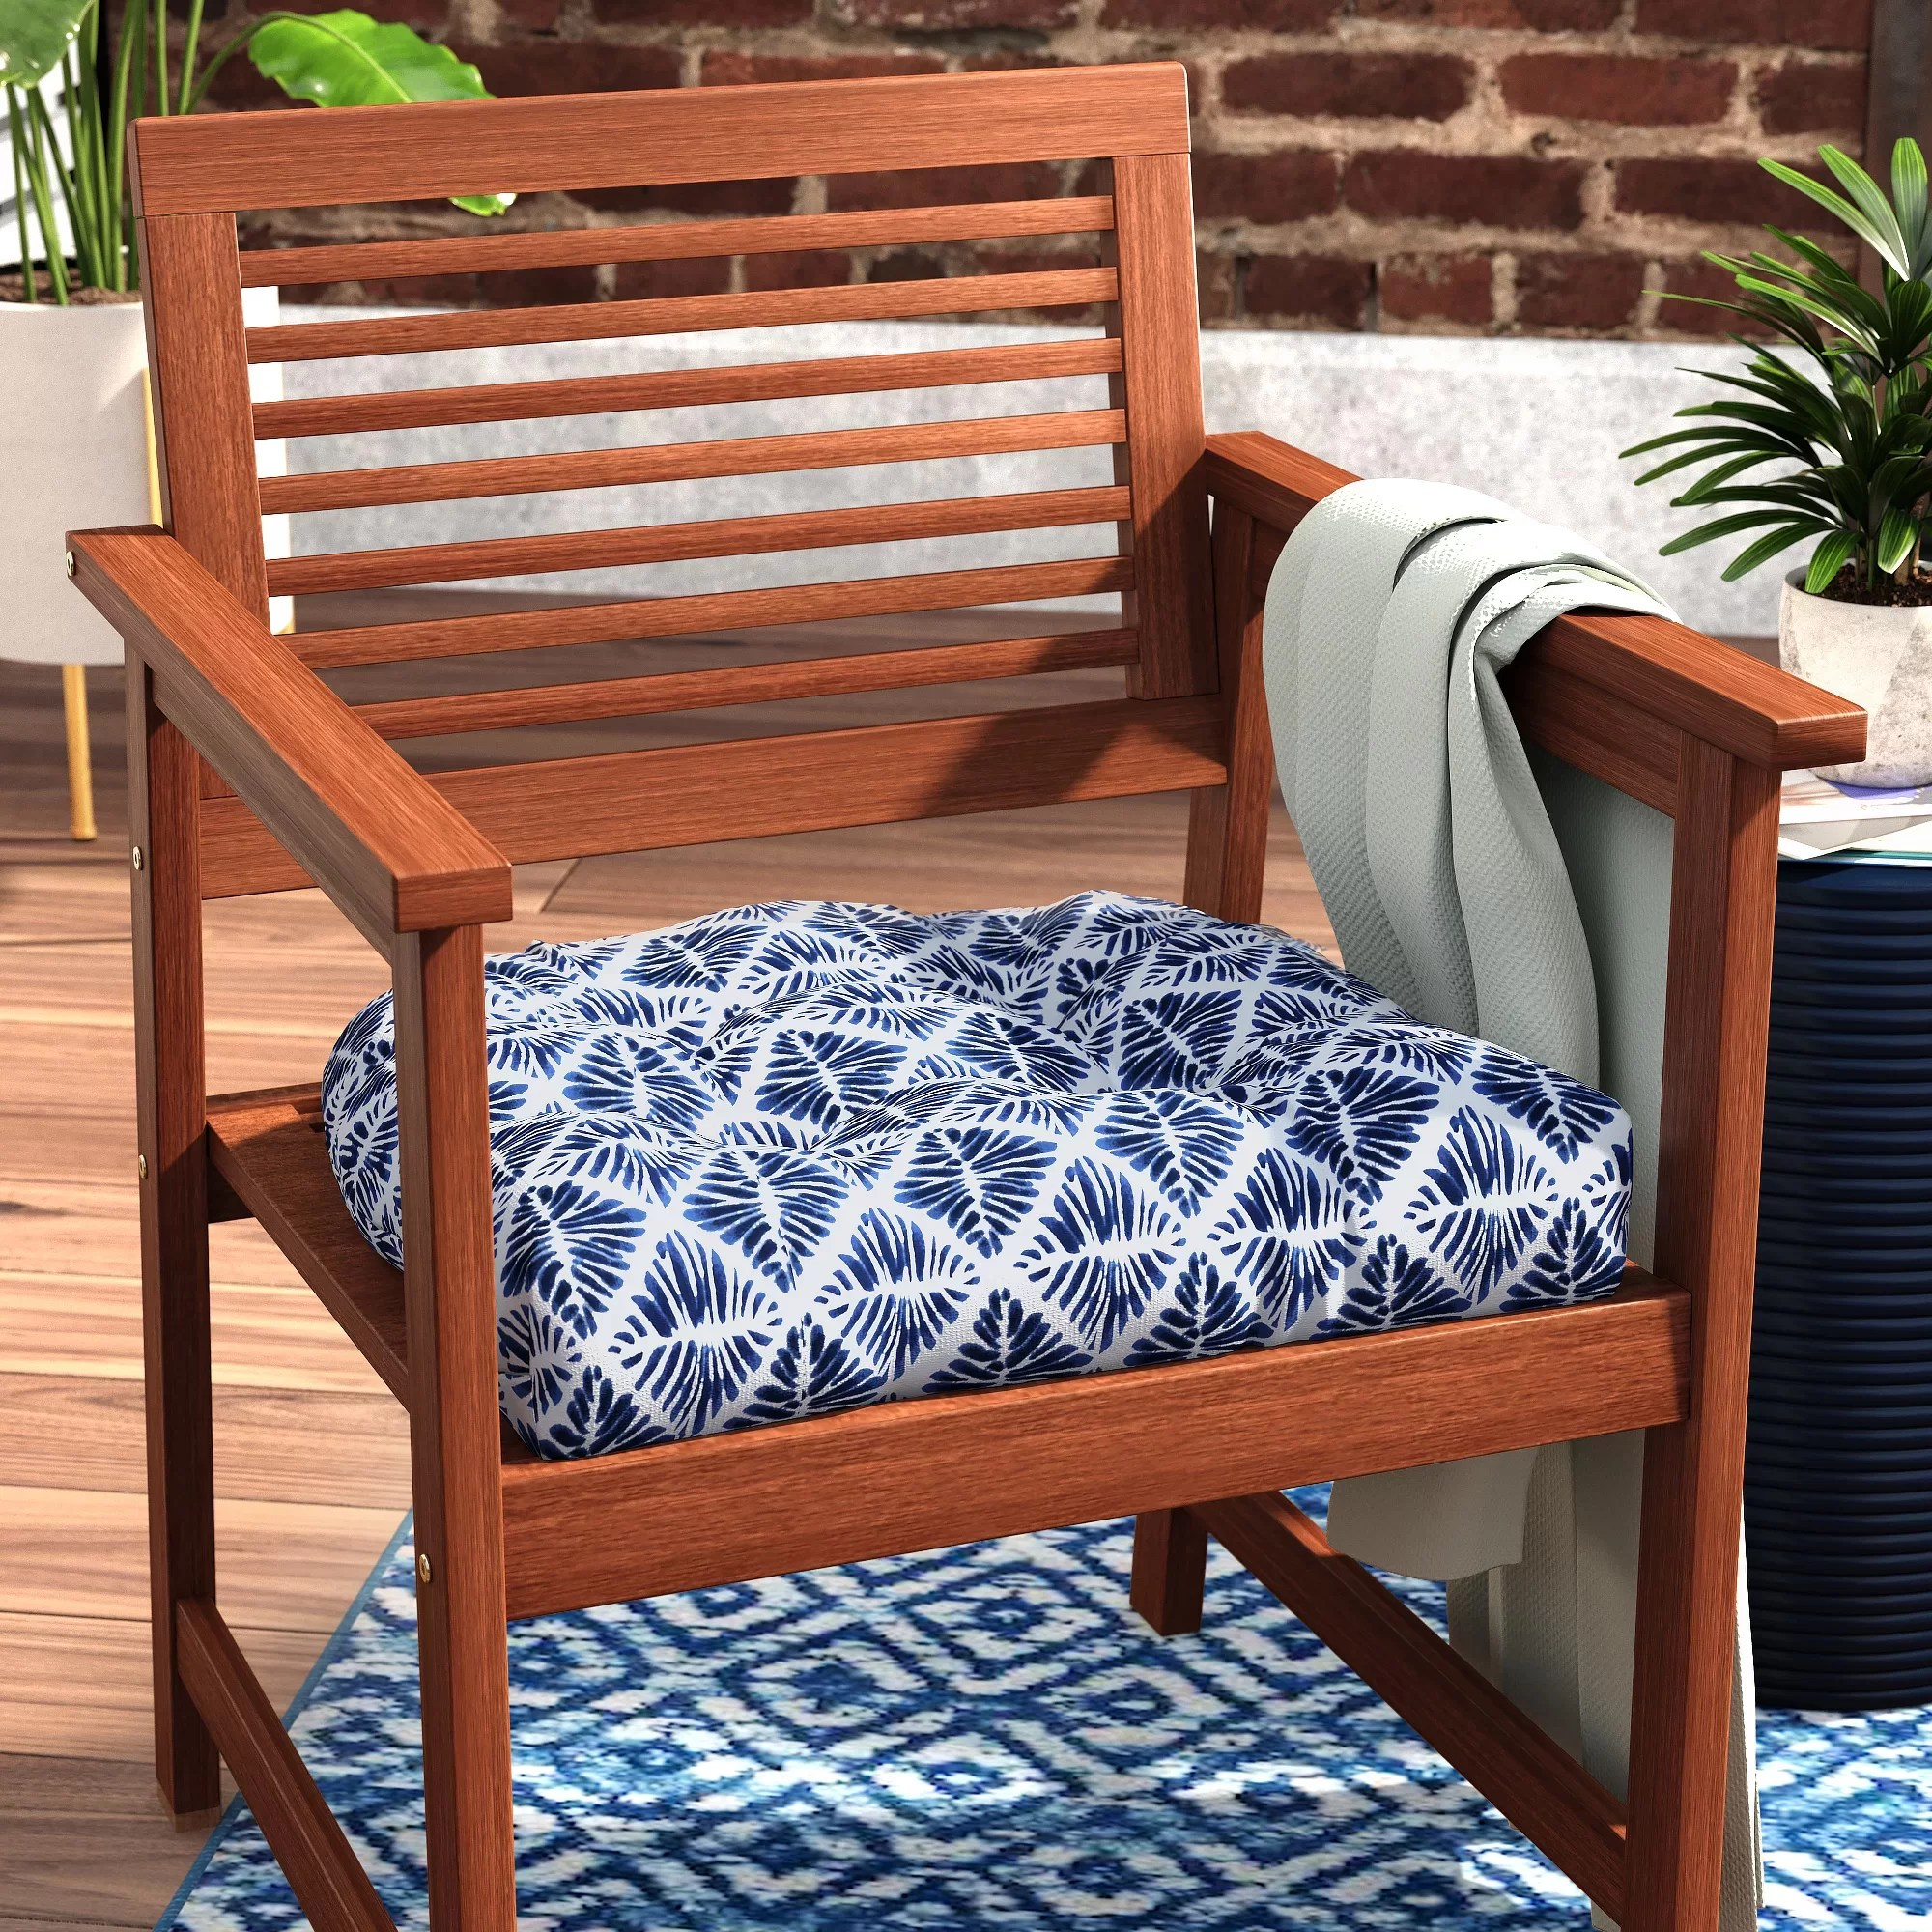 Rehoboth Indoor Wicker Dining Chair Cushion